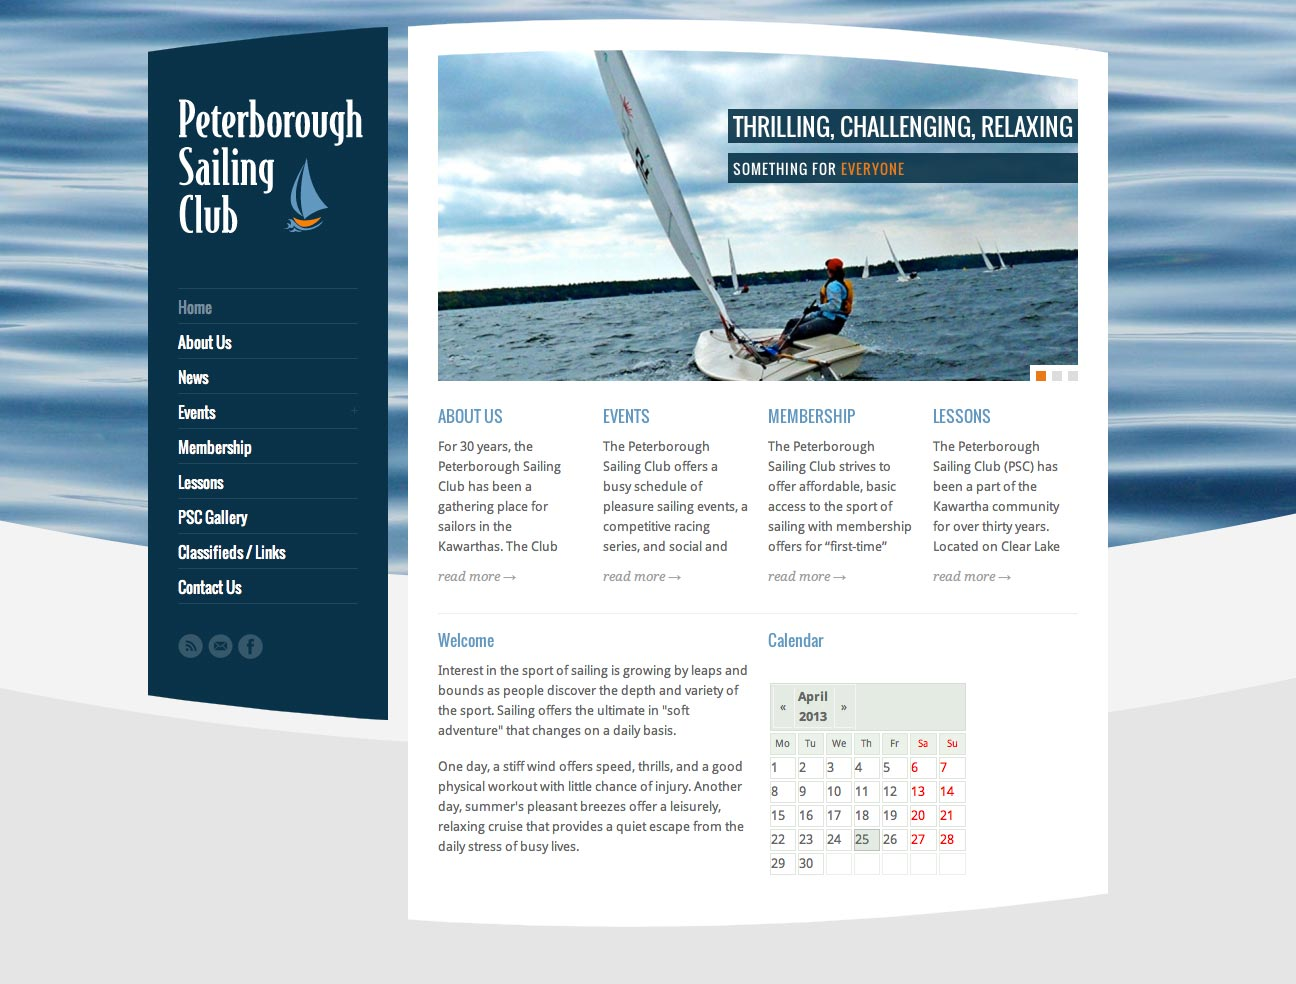 Peterborough Sailing Club